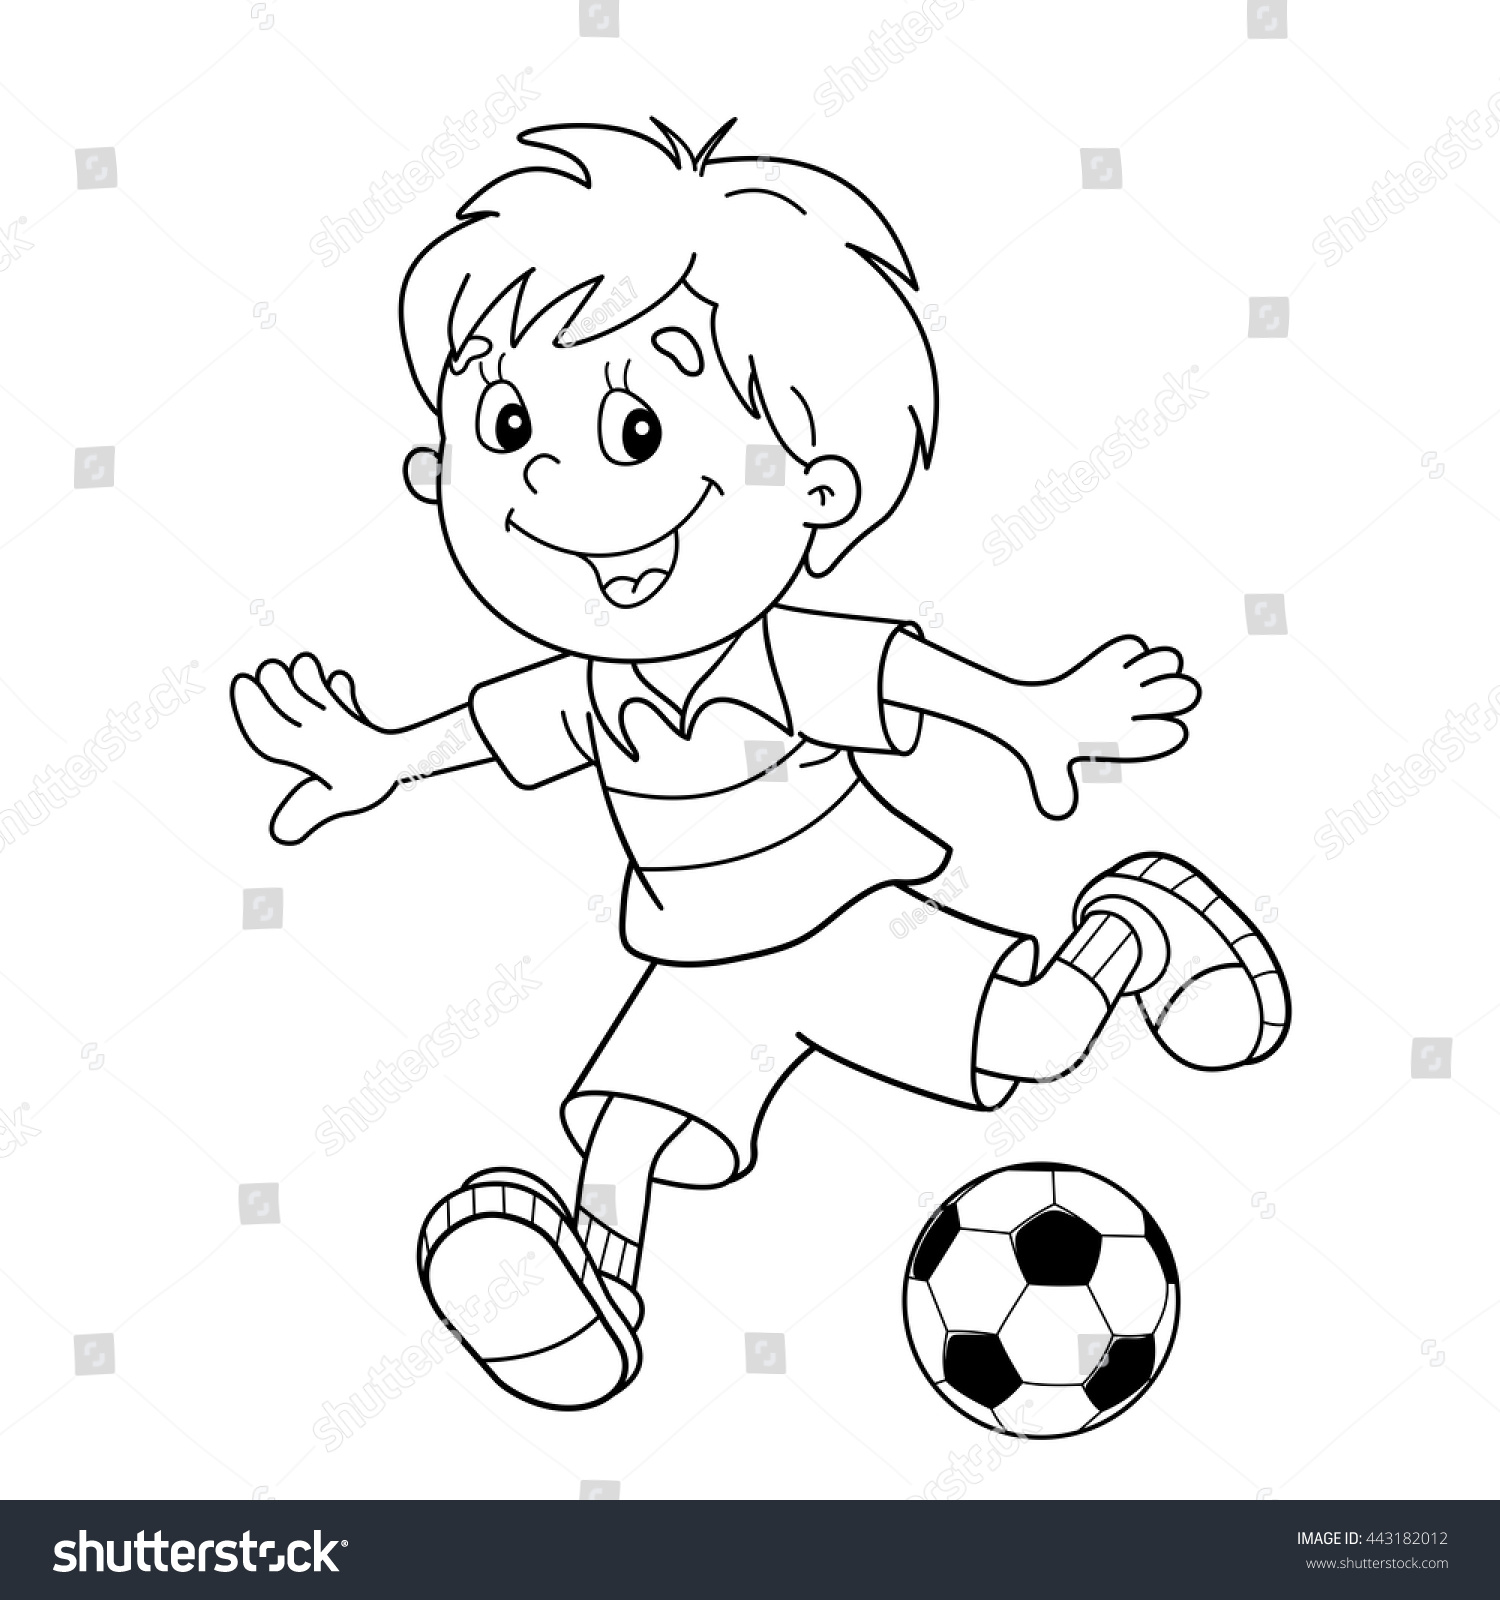 coloring page outline cartoon boy soccer stock vector 443182012